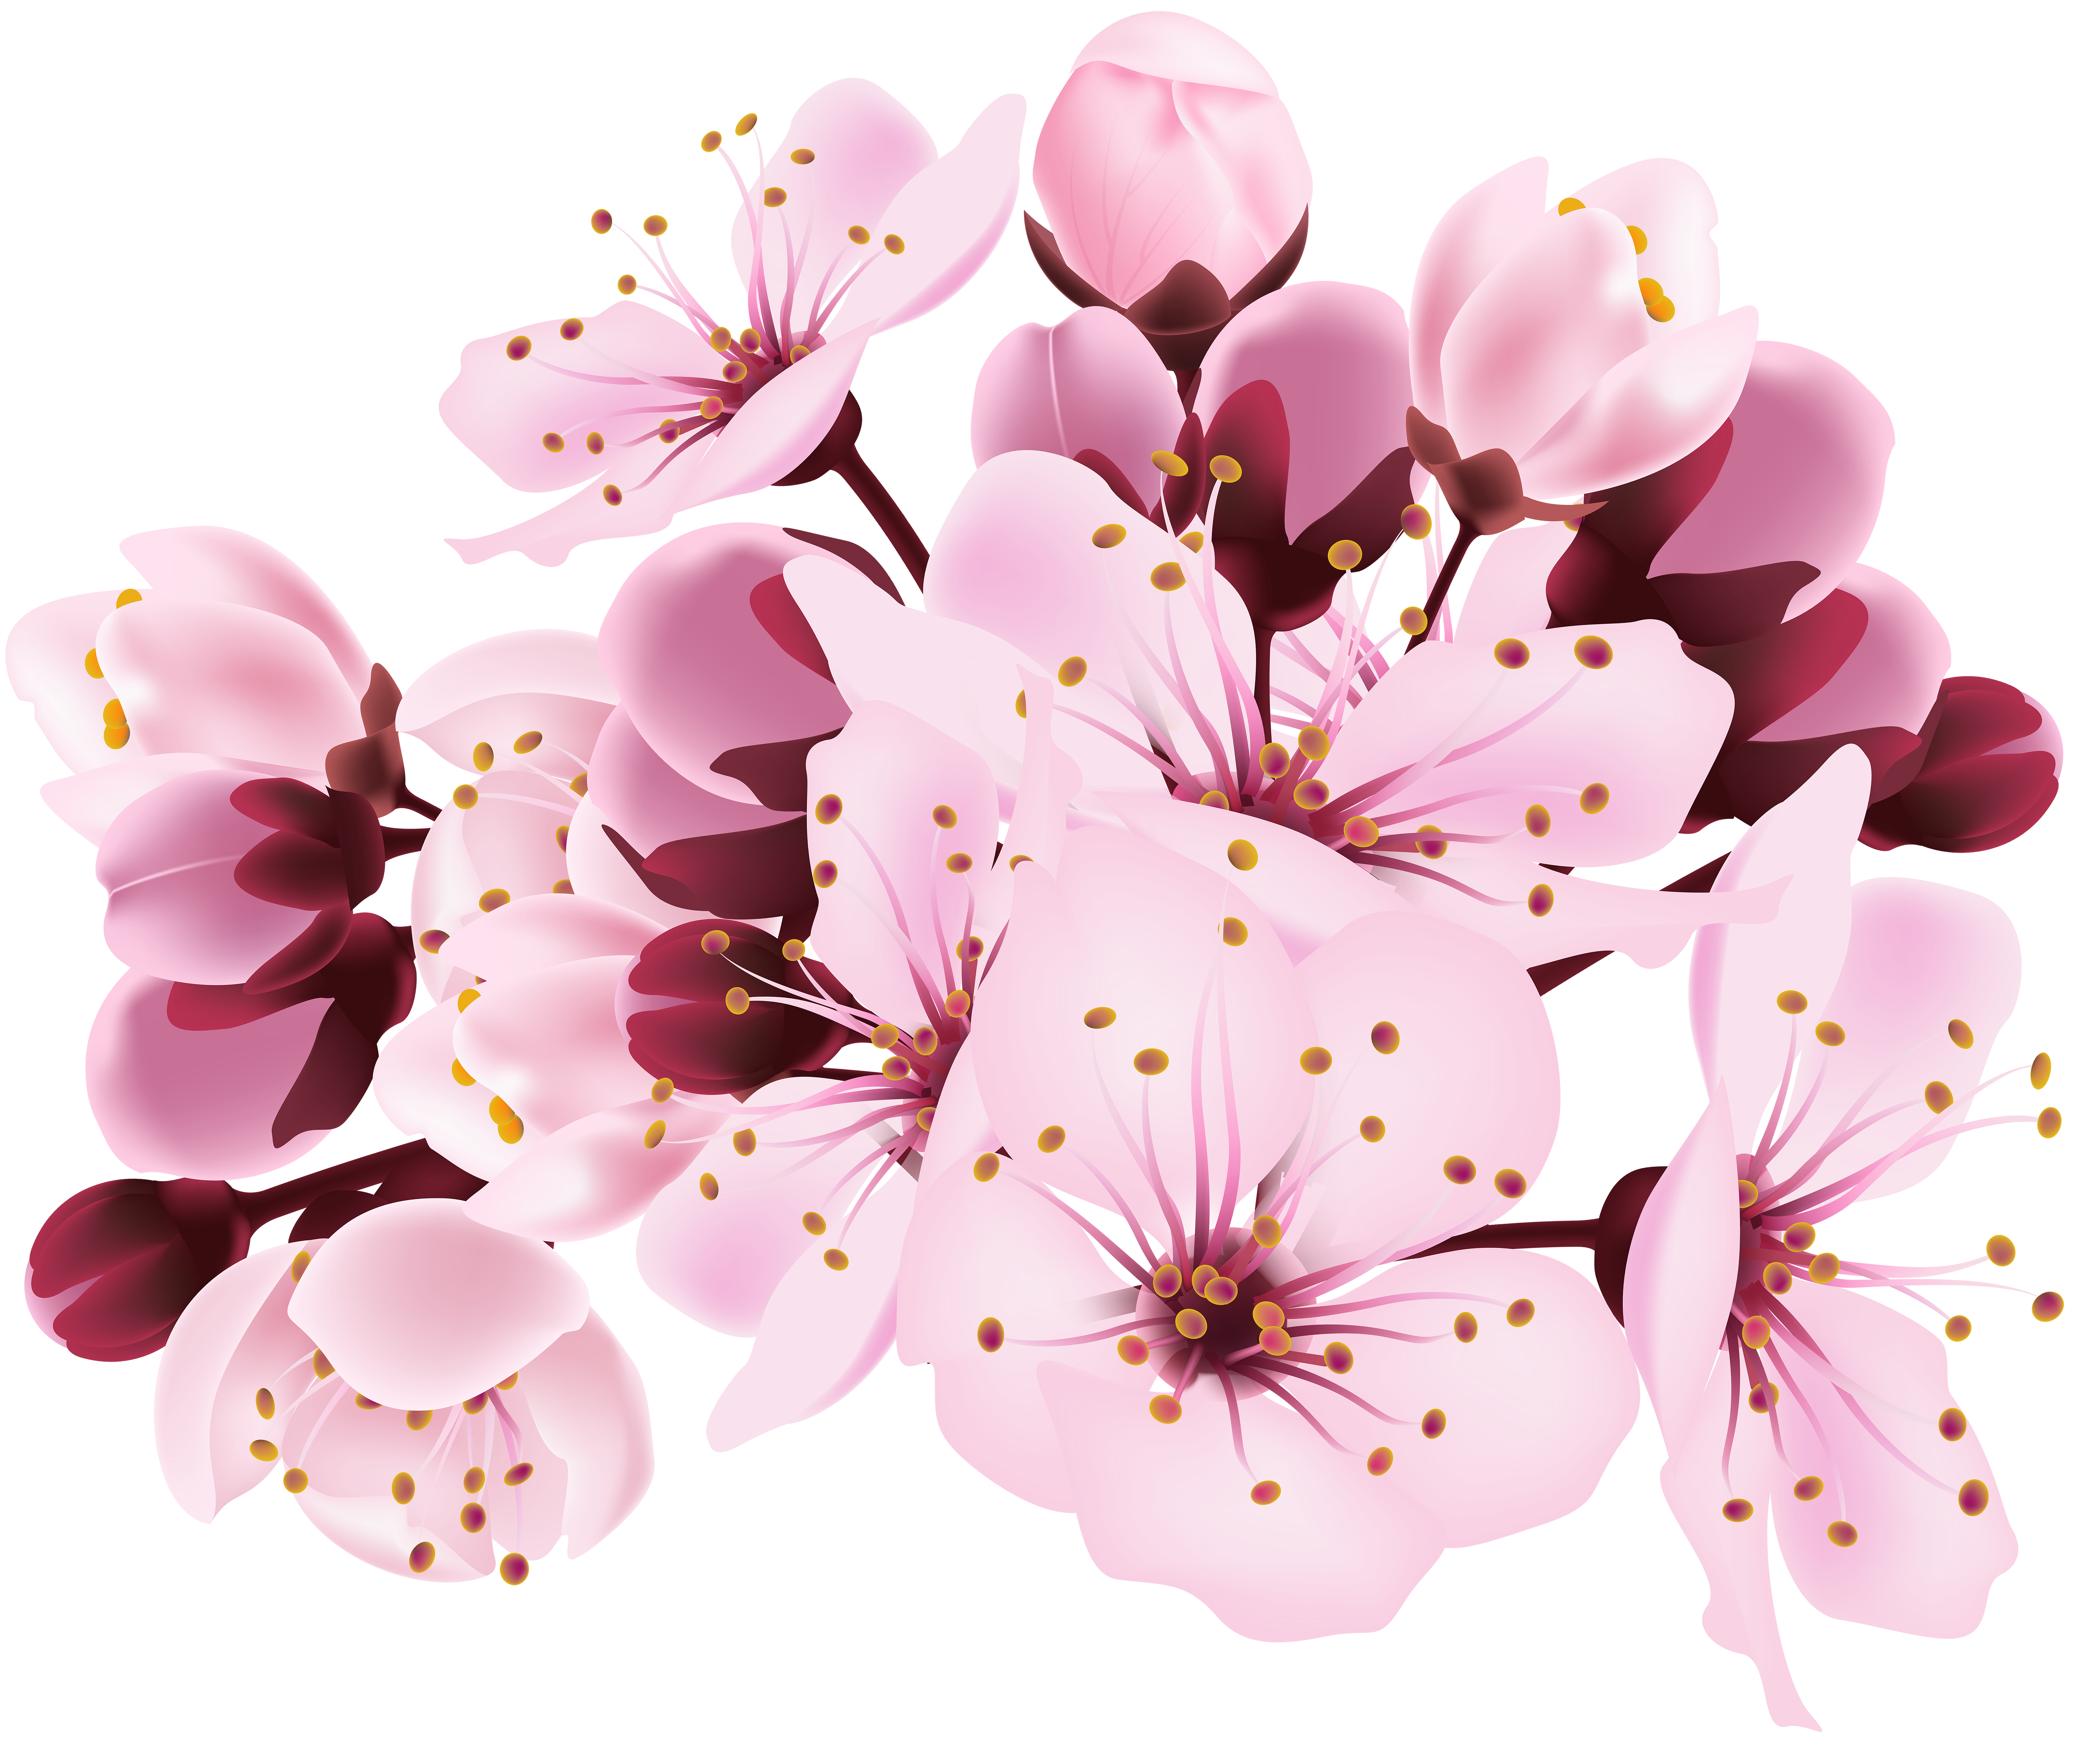 Cherry Blossom Decorative Transparent Image Gallery Yopriceville High Quality Images And Transpa Cherry Blossom Wedding Invitations Blossom Cherry Blossom